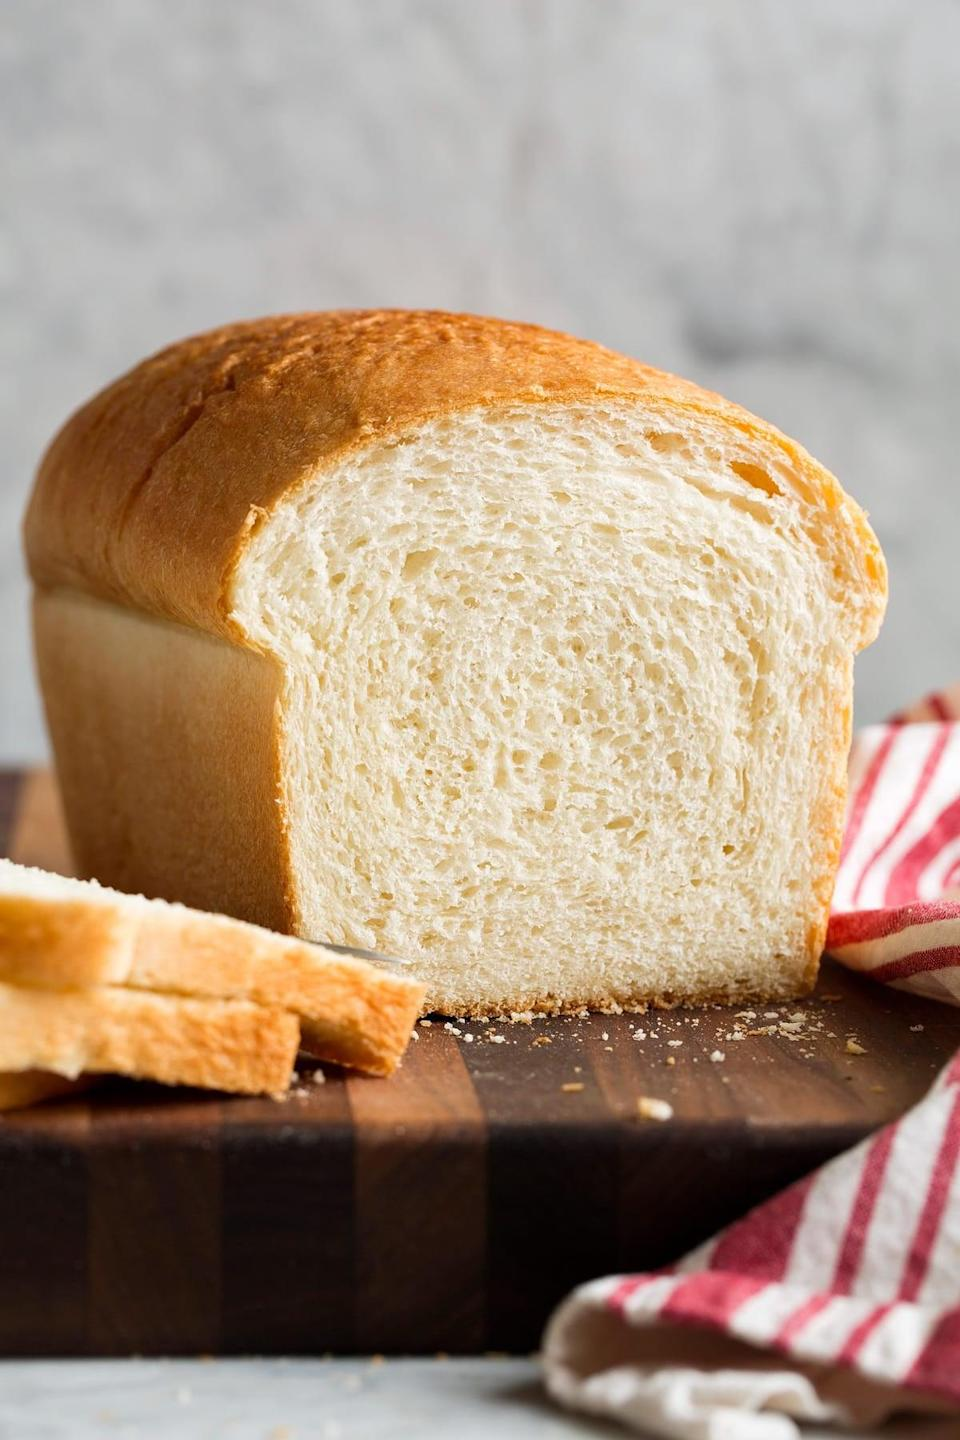 "<p>From crunchy breakfast toast to a loaded lunch sandwich, this white bread can be grazed on all day long. Enjoy it with spreads, meats, and so much more.</p> <p><strong>Get the recipe</strong>: <a href=""https://www.cookingclassy.com/homemade-bread/"" class=""link rapid-noclick-resp"" rel=""nofollow noopener"" target=""_blank"" data-ylk=""slk:basic white bread"">basic white bread</a></p>"